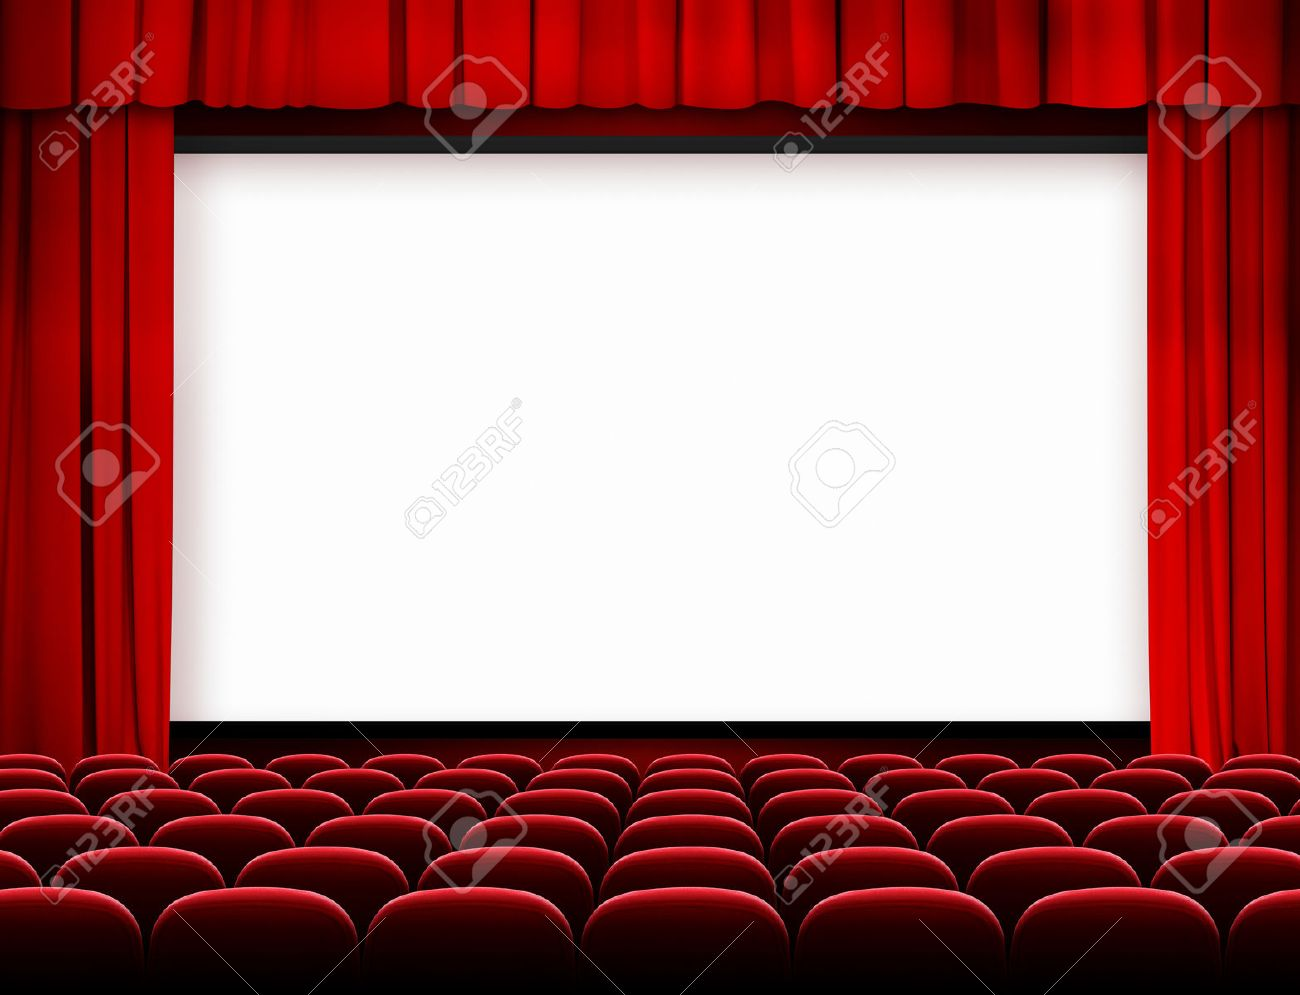 Cinema Screen With Red Curtains And Seats Stock Photo   22861135